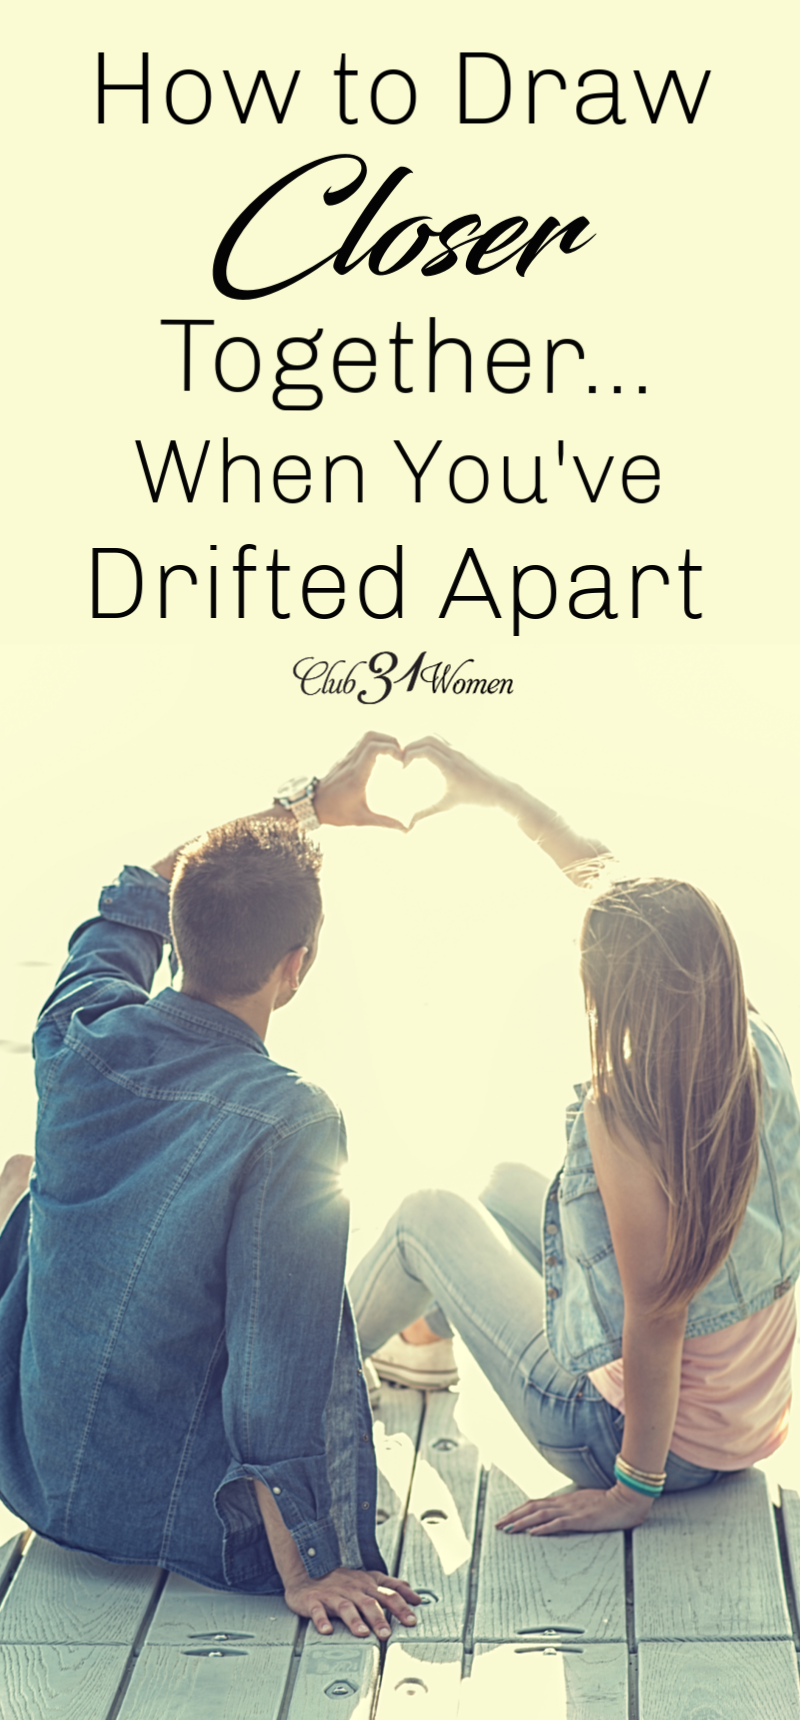 Have you drifted apart in your marriage? Wish the two of you were closer? Here are 7 inspiring ways you can draw closer in your relationship!